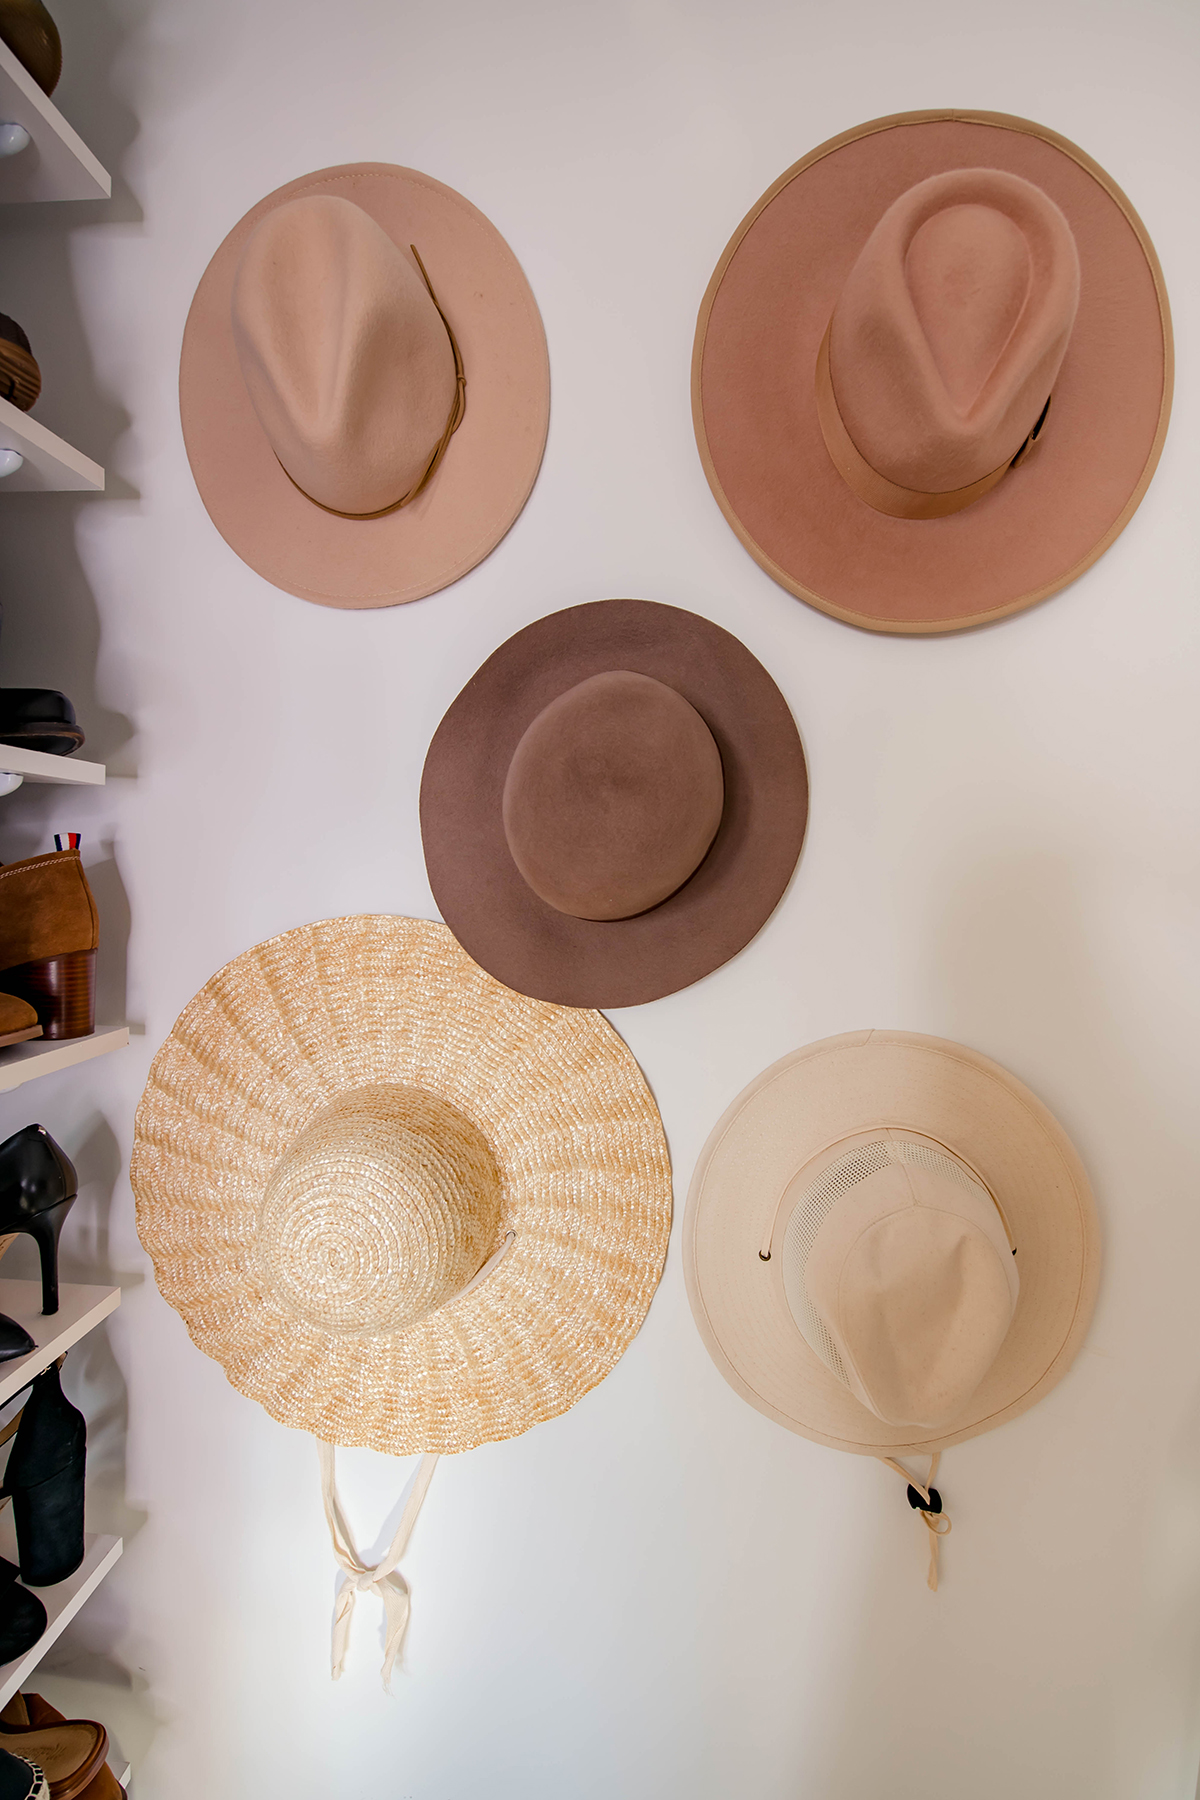 Hanging Hats On The Wall